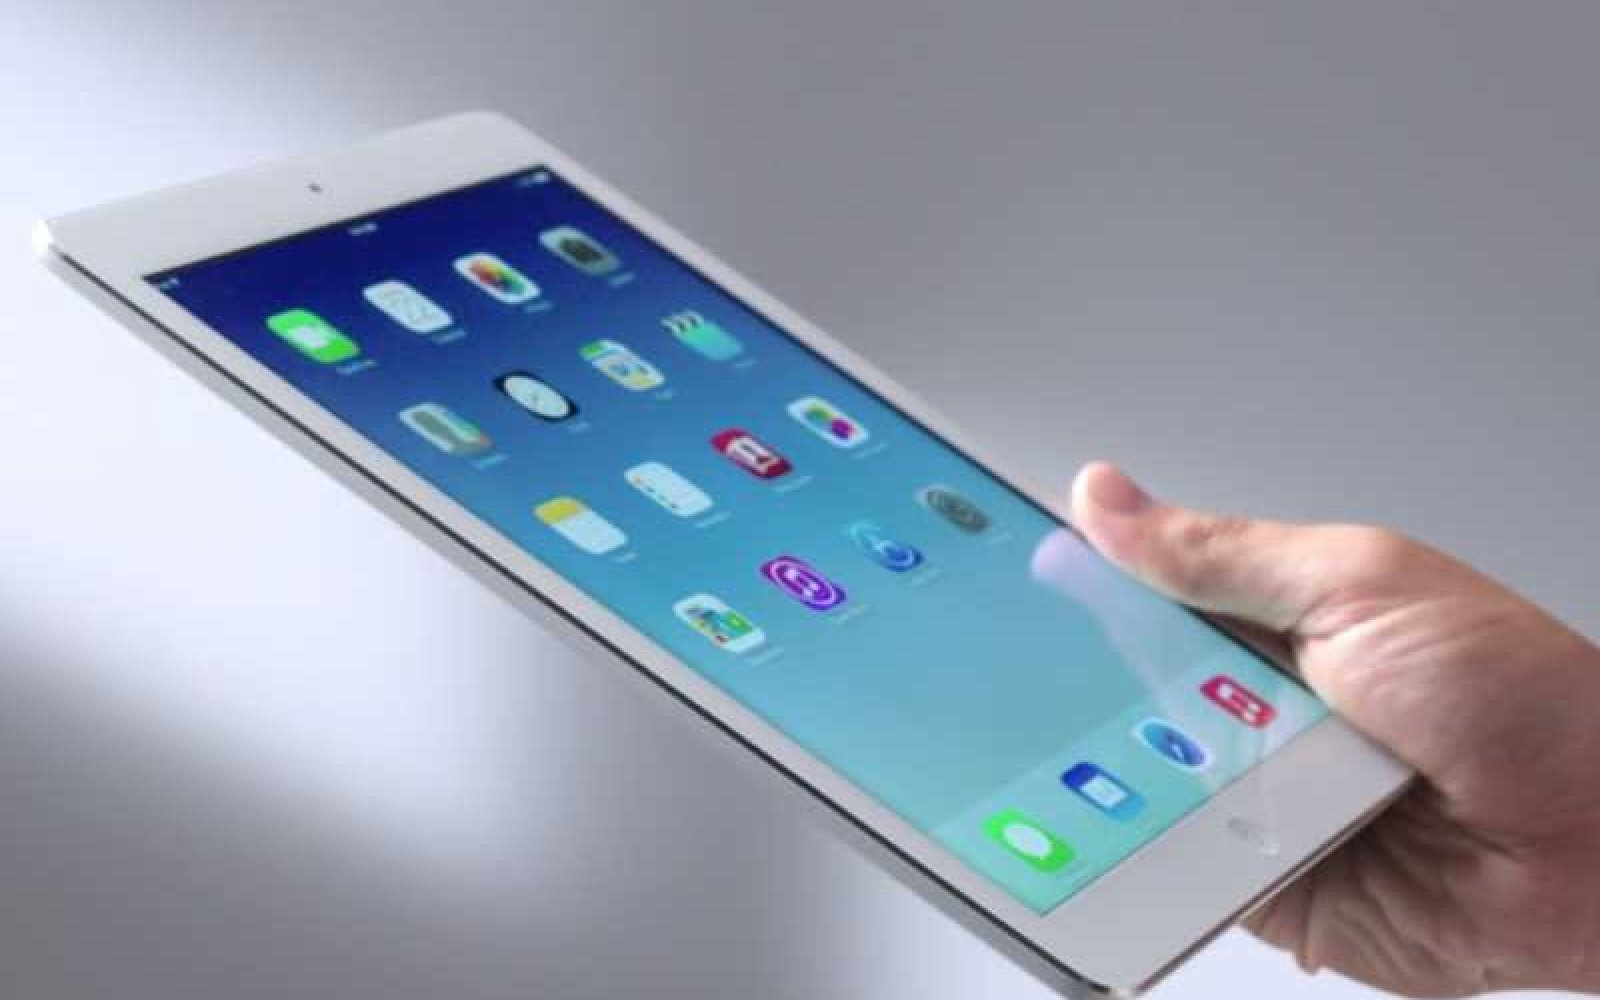 In line with previous rumors, Apple said to be preparing iPad Air 2 for October launch